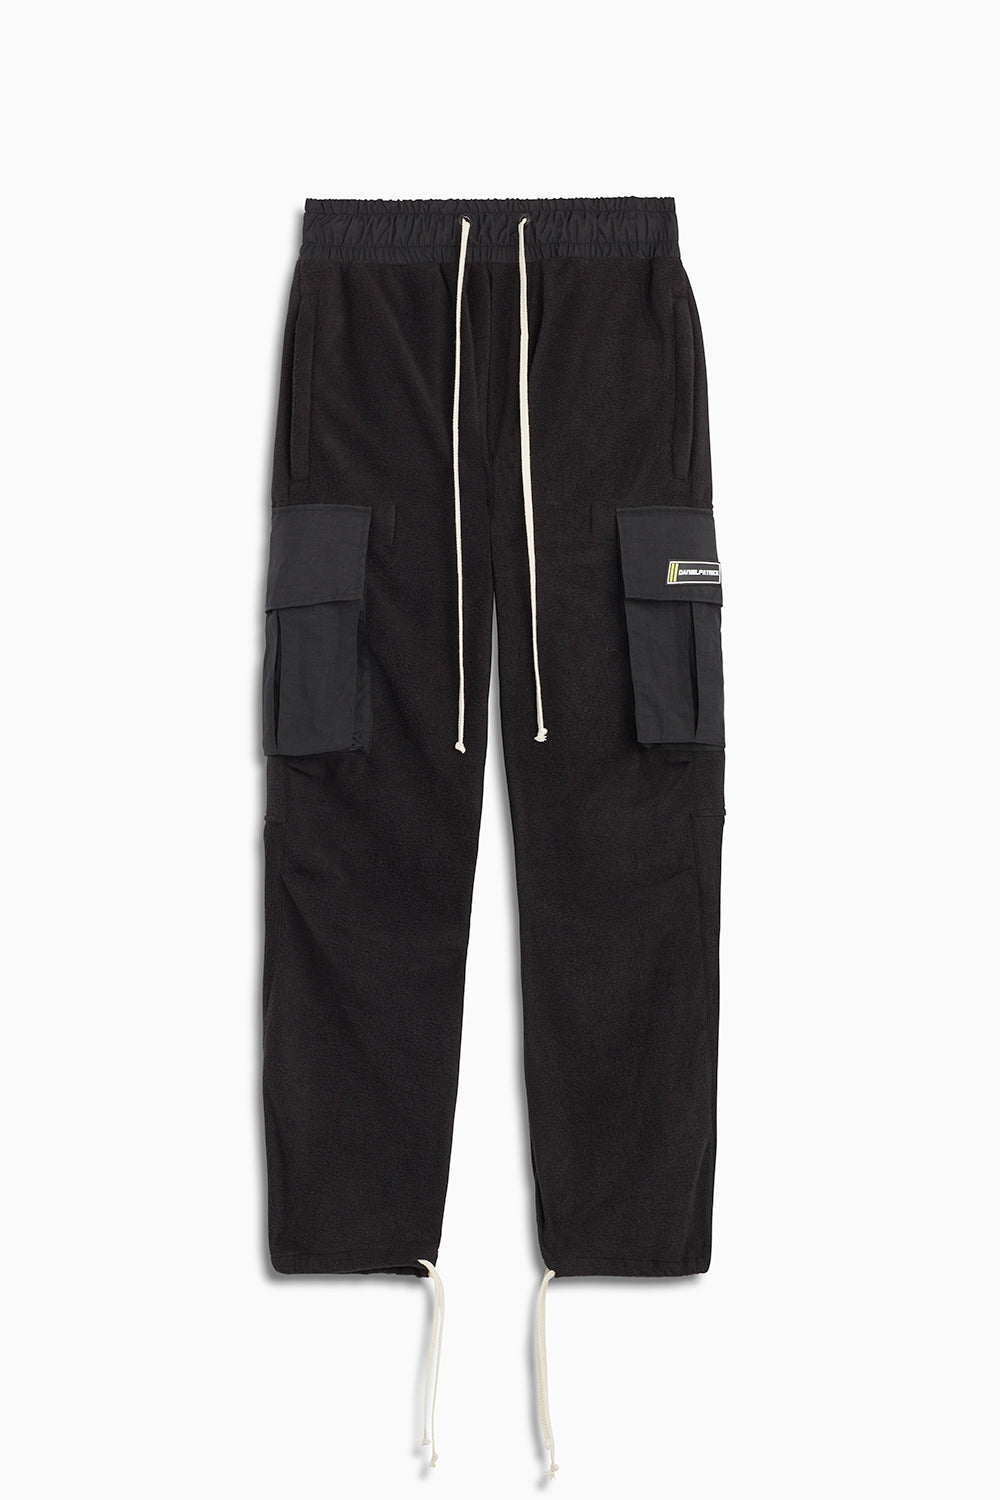 M93 cargo pants in black polar fleece/black by daniel patrick